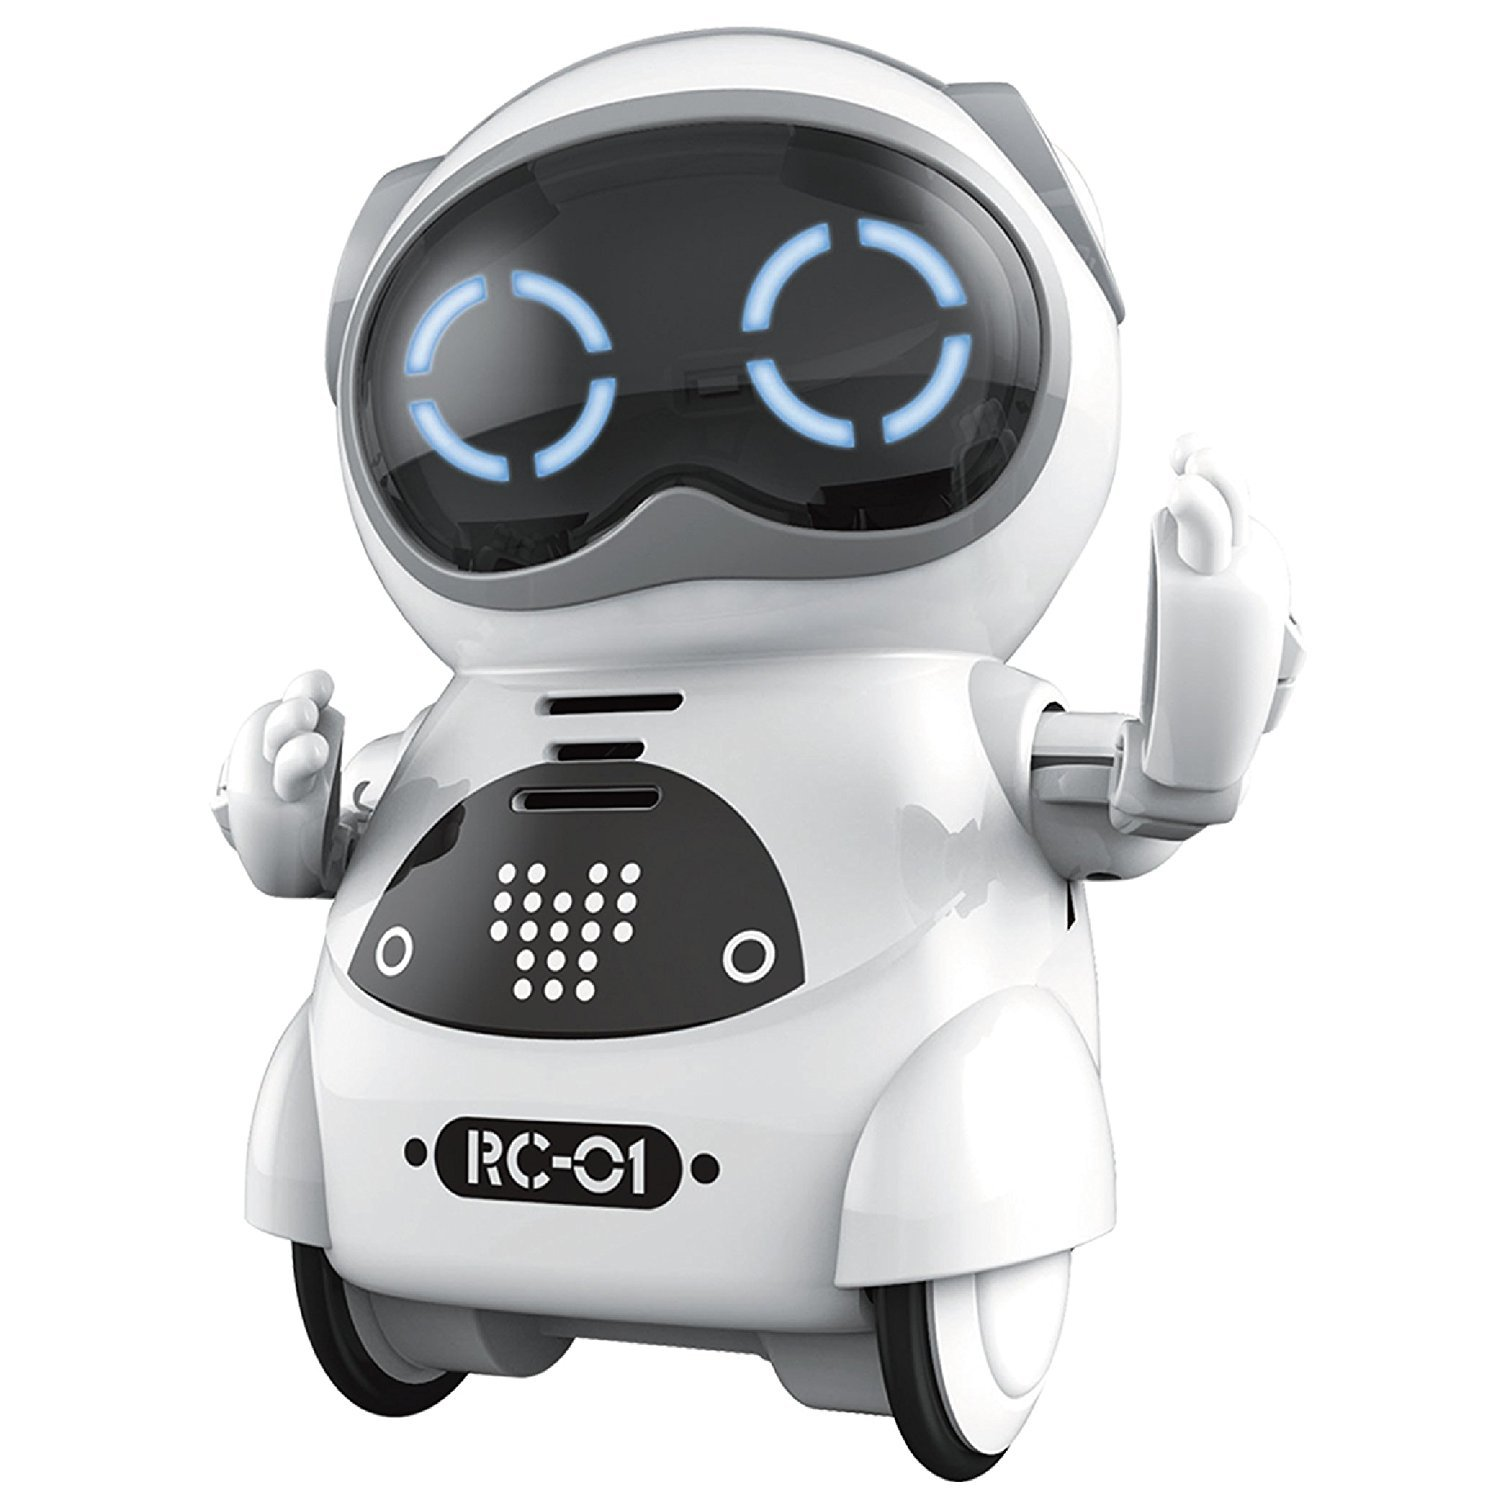 Induction Intelligent Remote Control Robot Children Educational Toys Early Kids Smart Toys With Music Talking Walking Function Making Things Convenient For The People Smart Remote Control